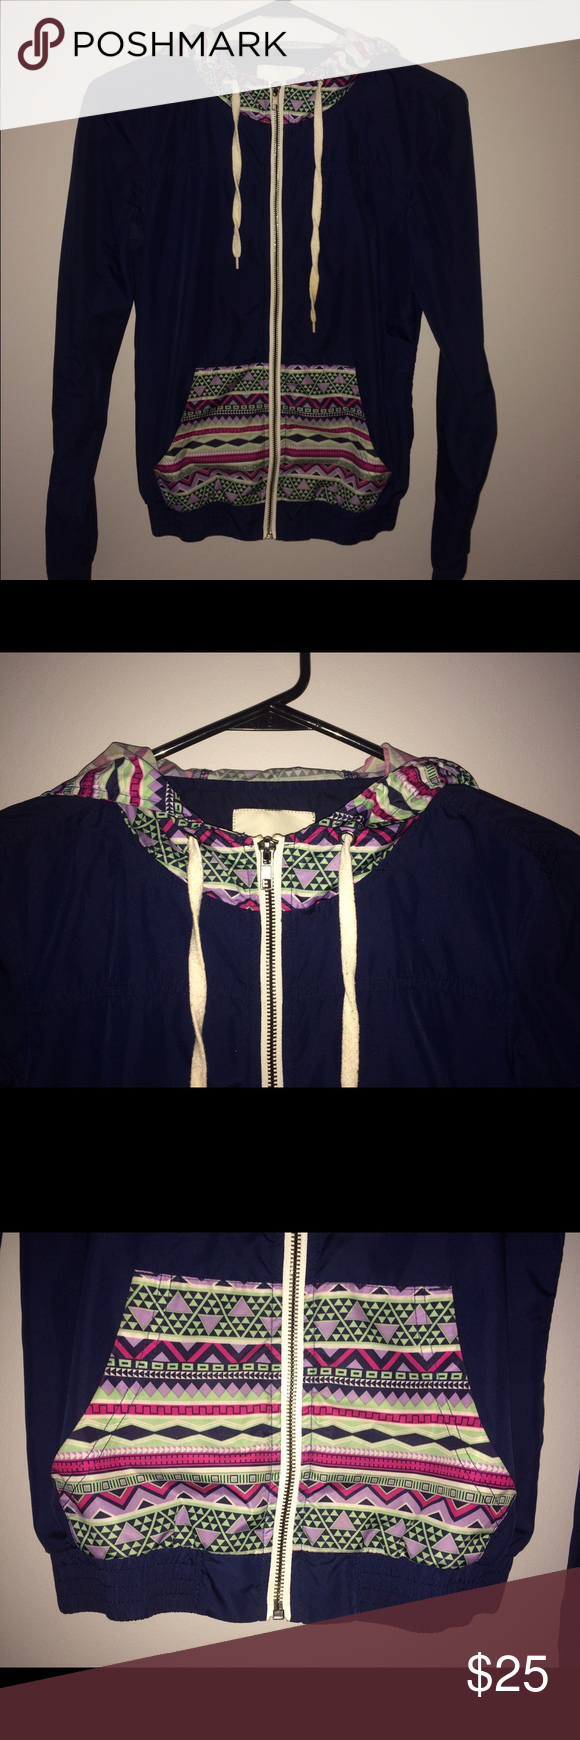 Tribal Zumiez Windbreaker This is a brand new tribal windbreaker from Zumiez :) it is navy blue with the tribal design on the pockets and on the hoodie! Match it with a comfortable sweater, it's a very cute windbreaker! :) Zumiez Jackets & Coats